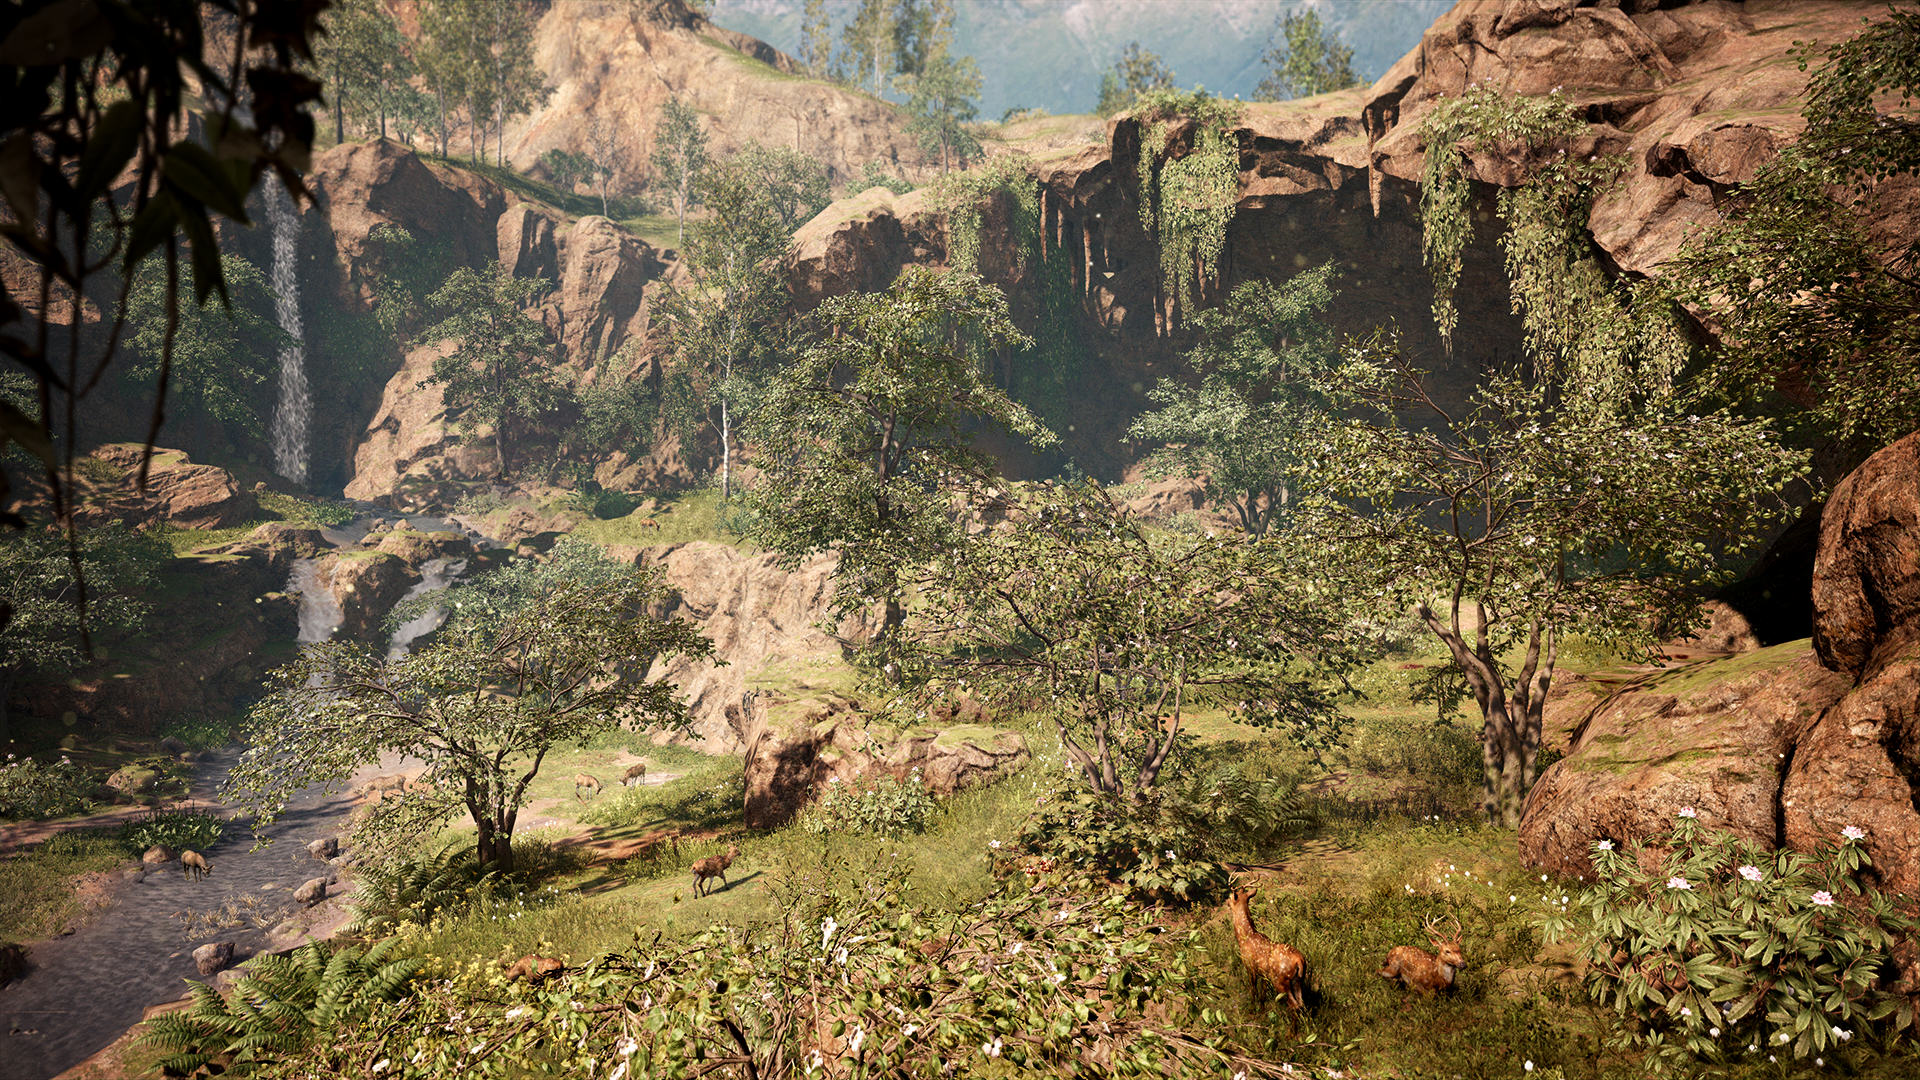 An Exclusive Look At Far Cry Primal Ahead Of Release Day FCP 07 Village Empty Screenshots PREVIEW PR 160126 6pm CET 1453716687